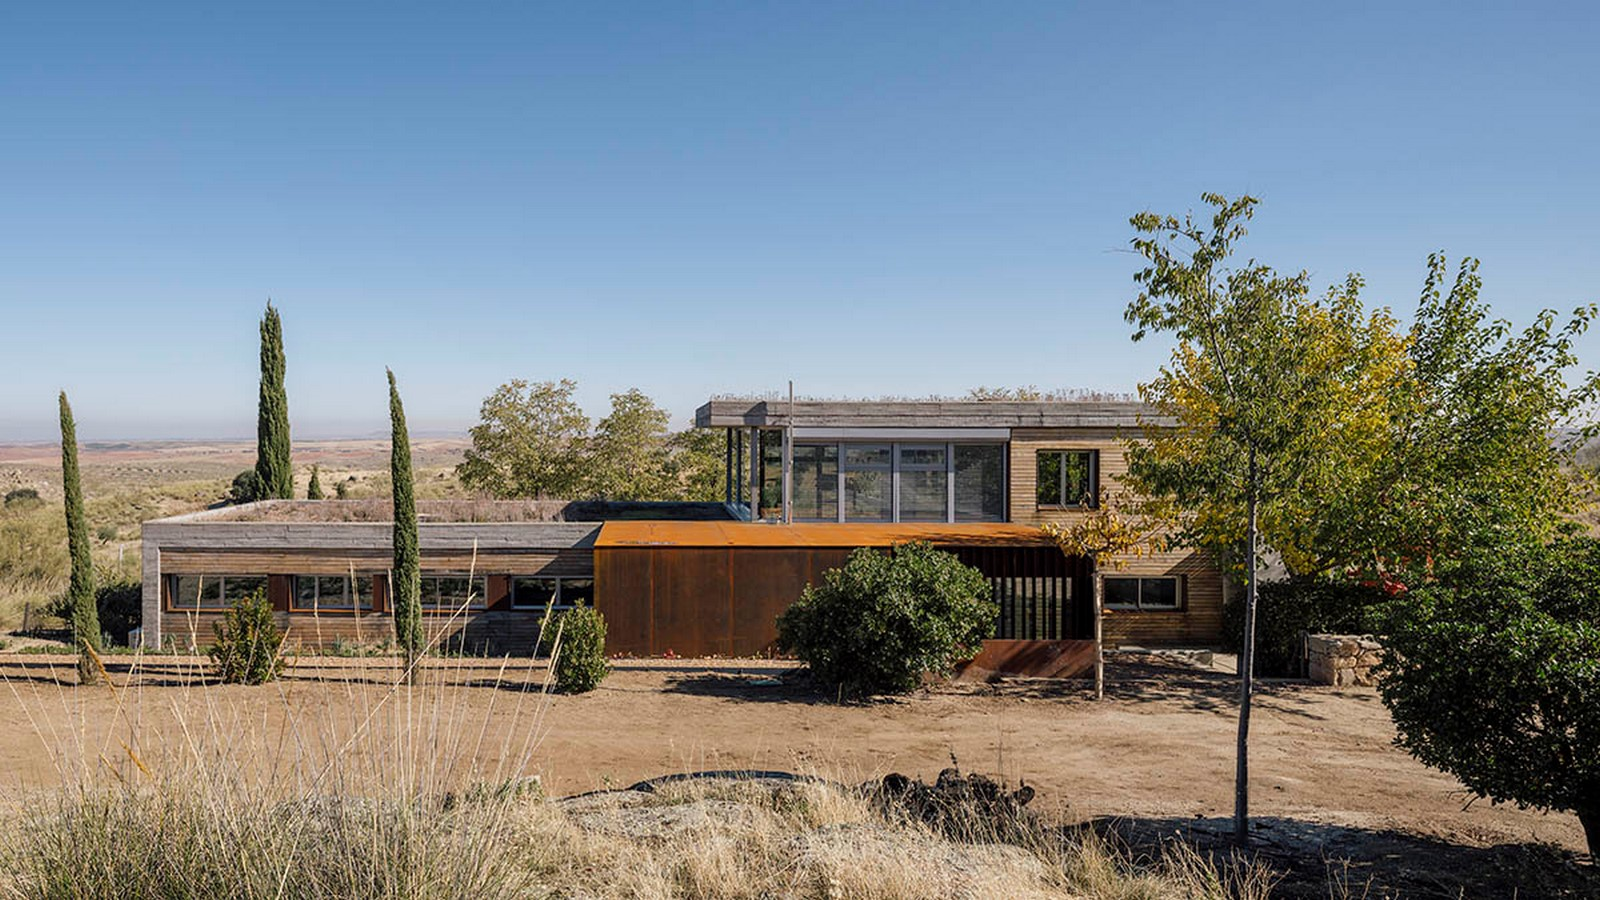 Two-Piece House With Corten Steel Addition In Toledo, Spain completed by DelaVegaCanolasso - Sheet1